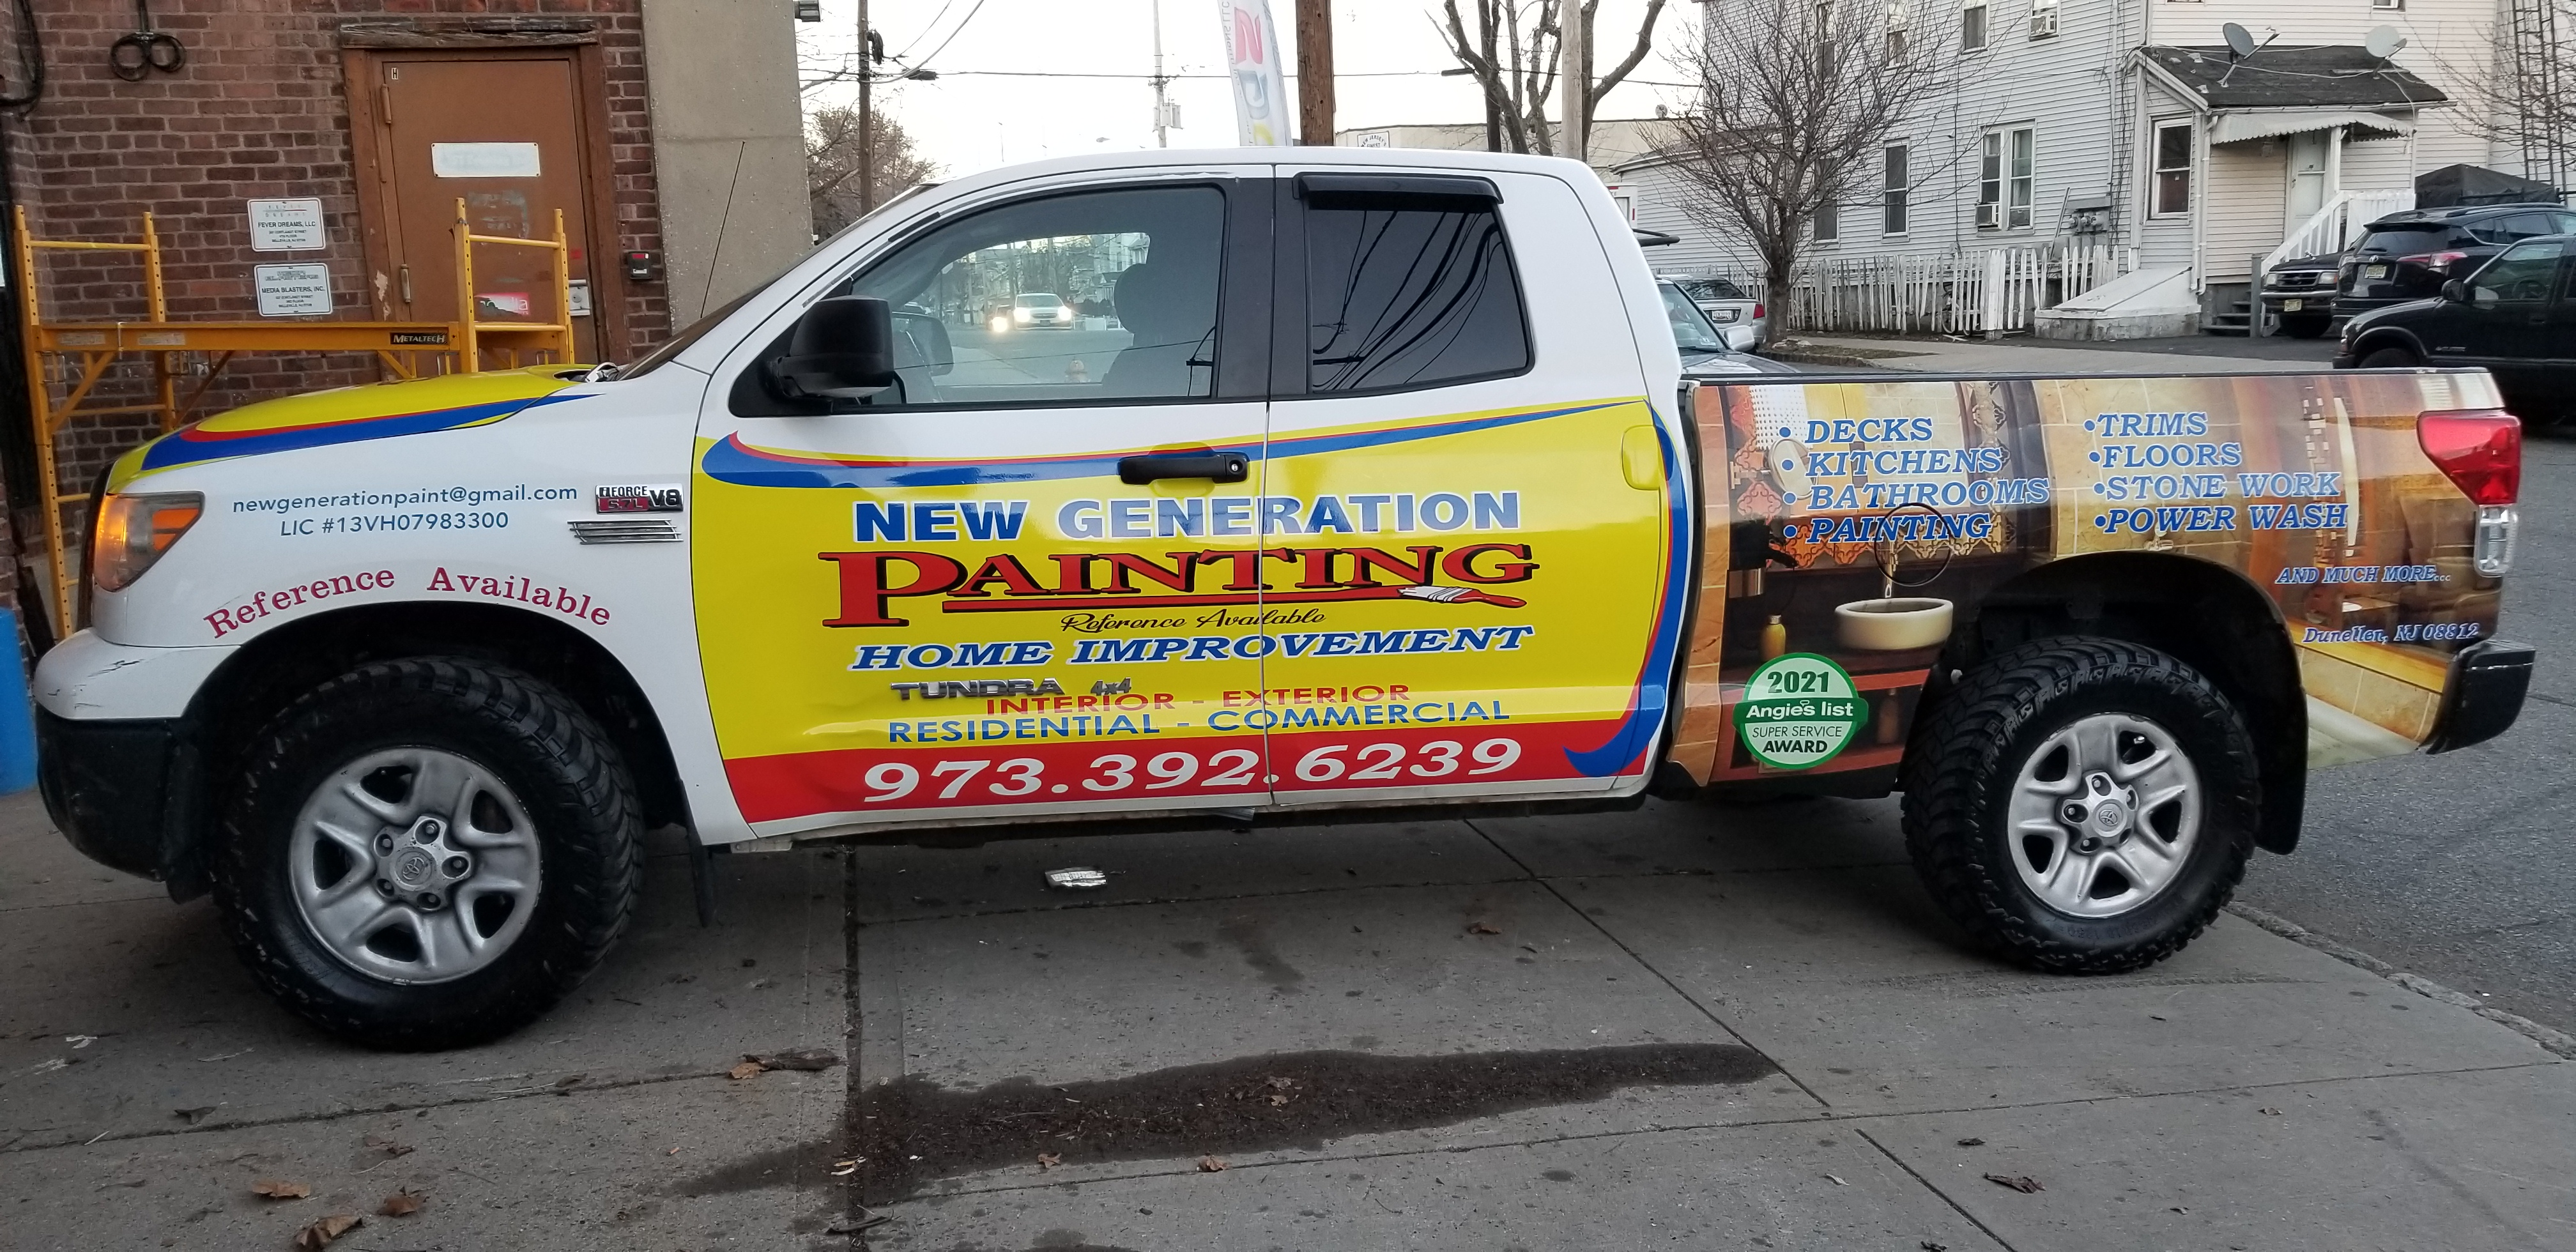 NEW GENERATION PAINT